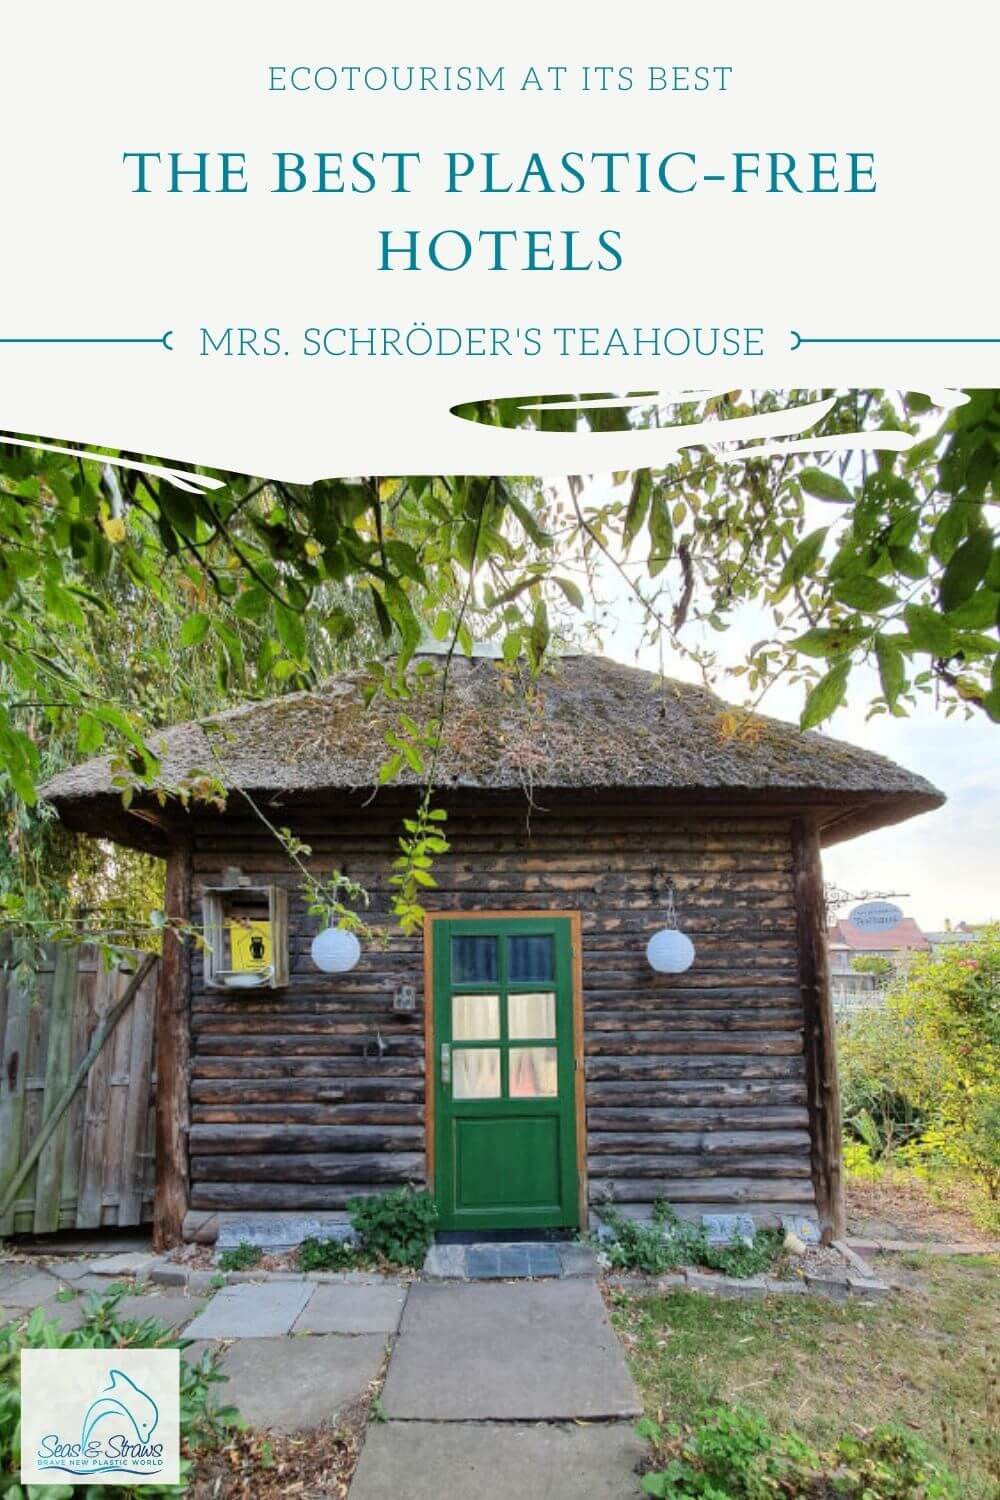 The best plastic-free hotels - Mrs. Schröder's Teahouse